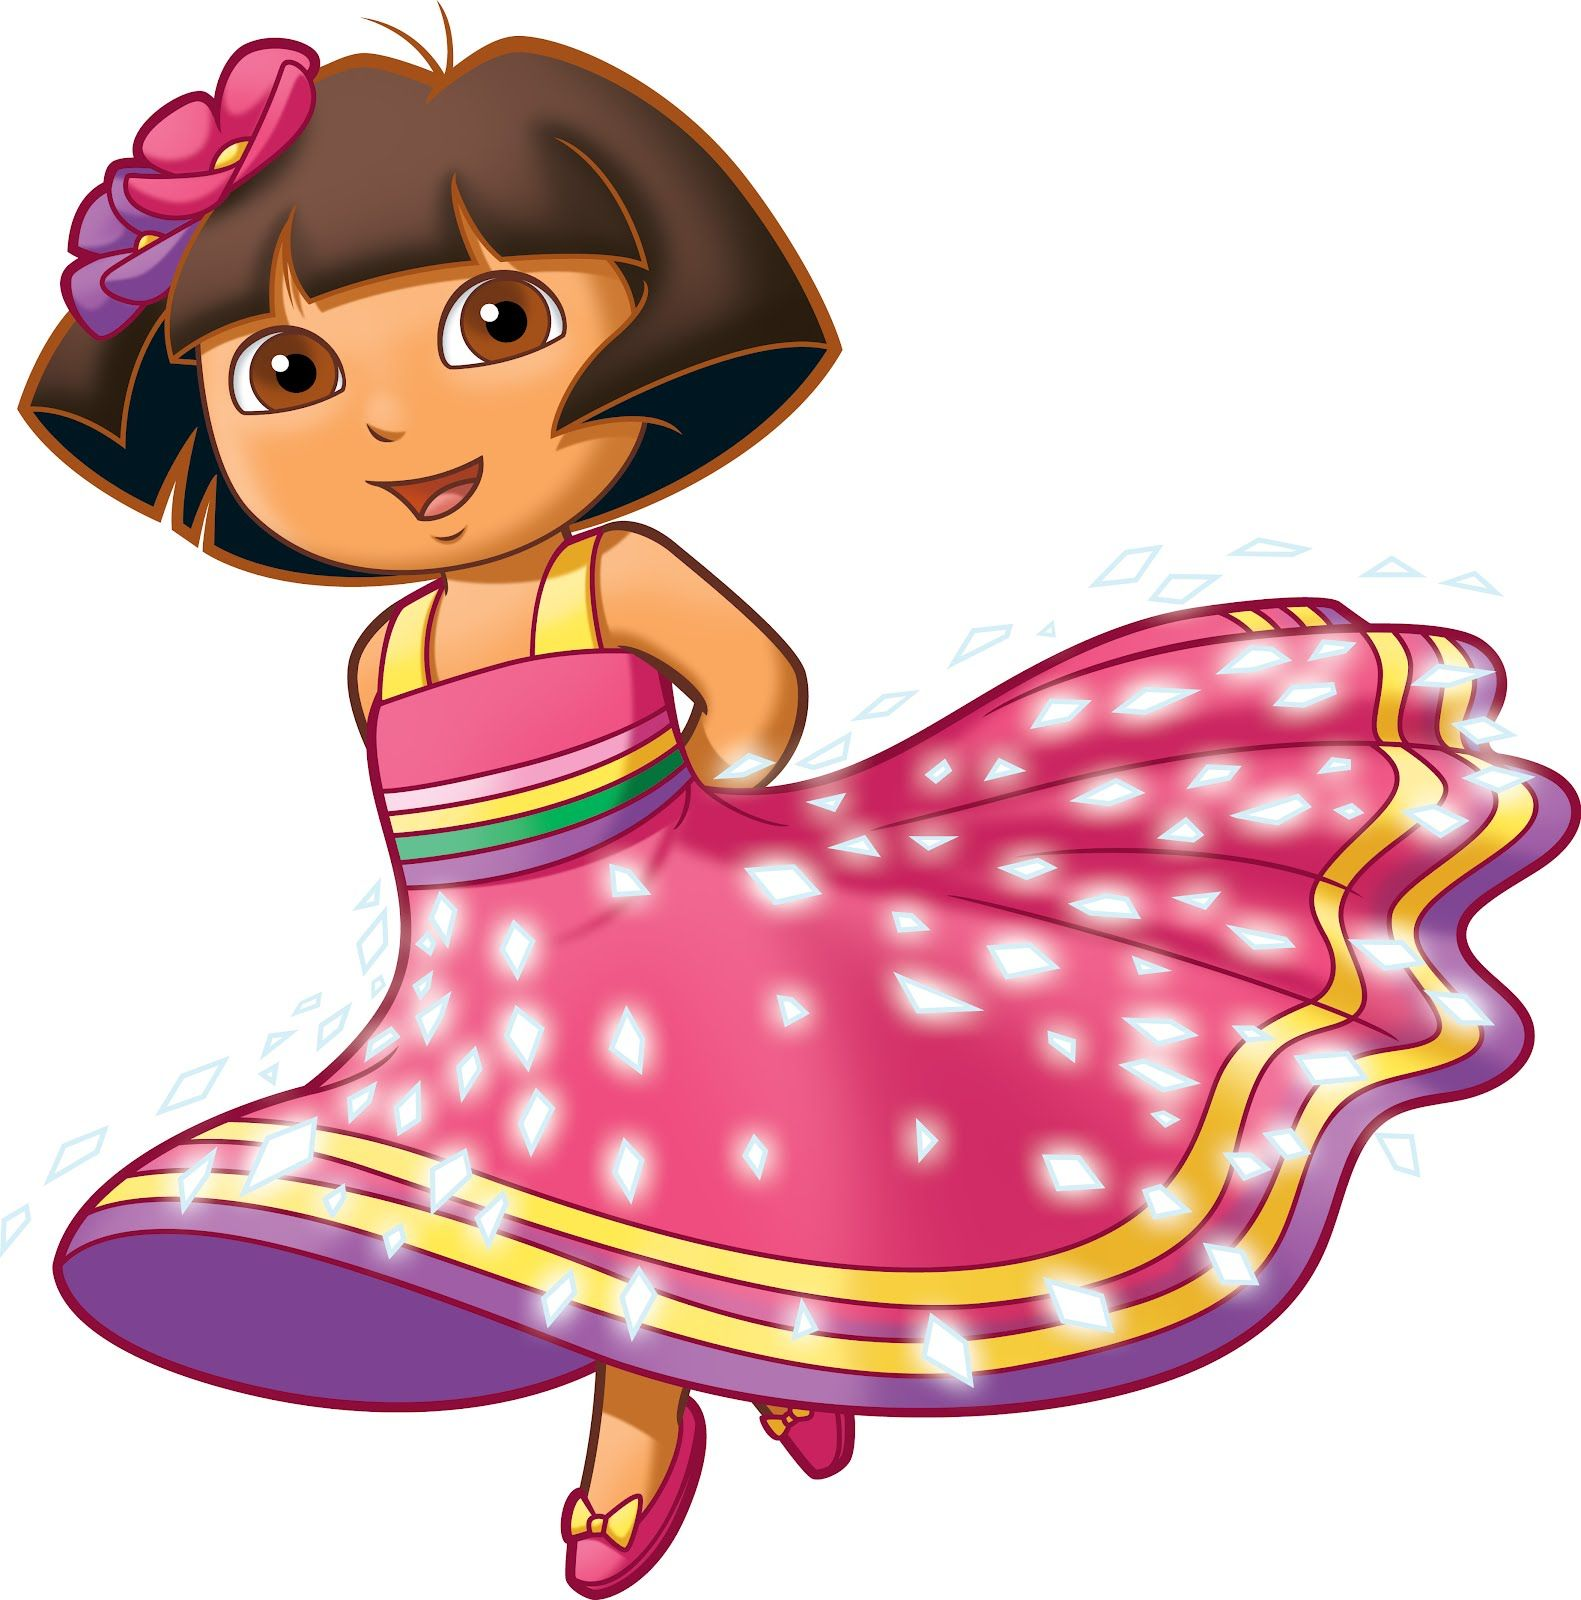 dora-as-a-princess-472975.jpg (1581×1600) | digitize images ...